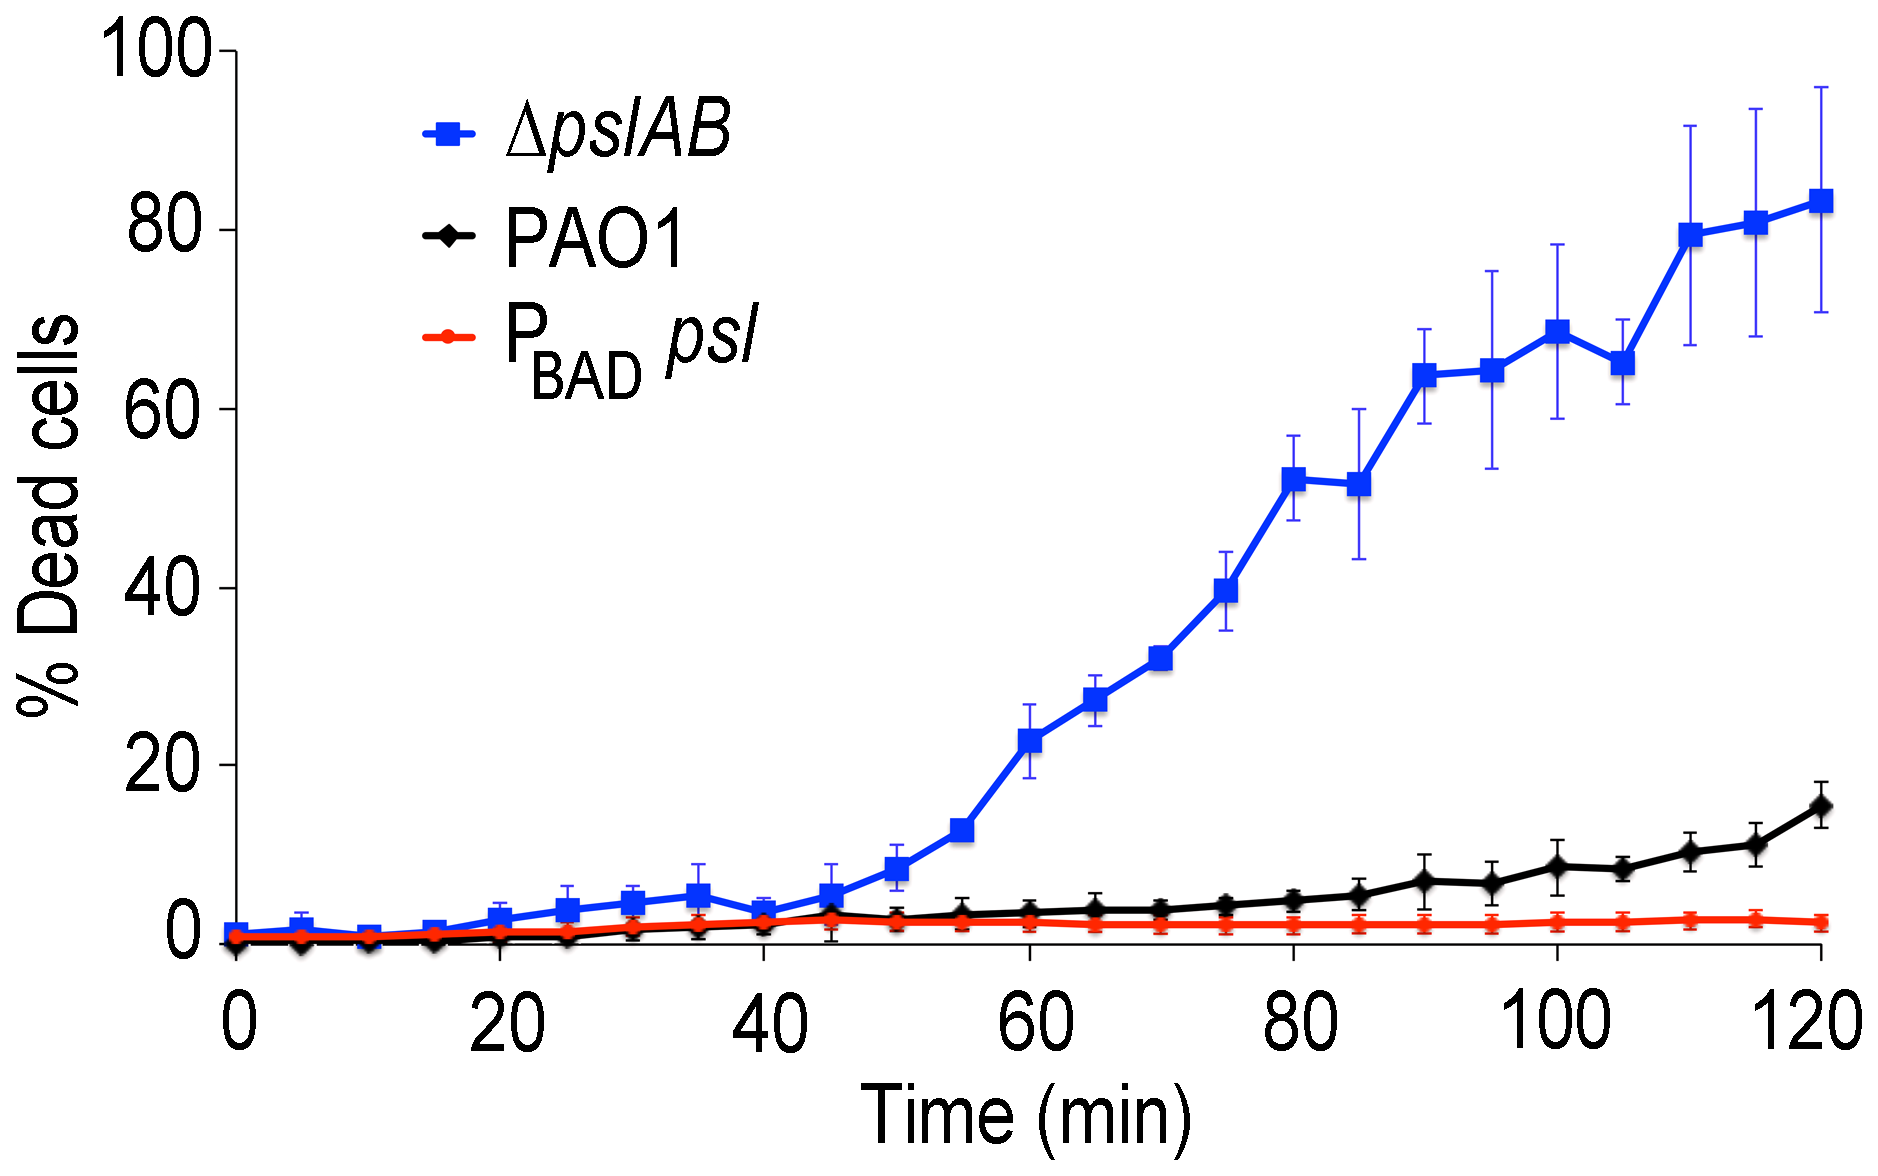 Psl contributes to colistin tolerance for biofilms grown under flow.